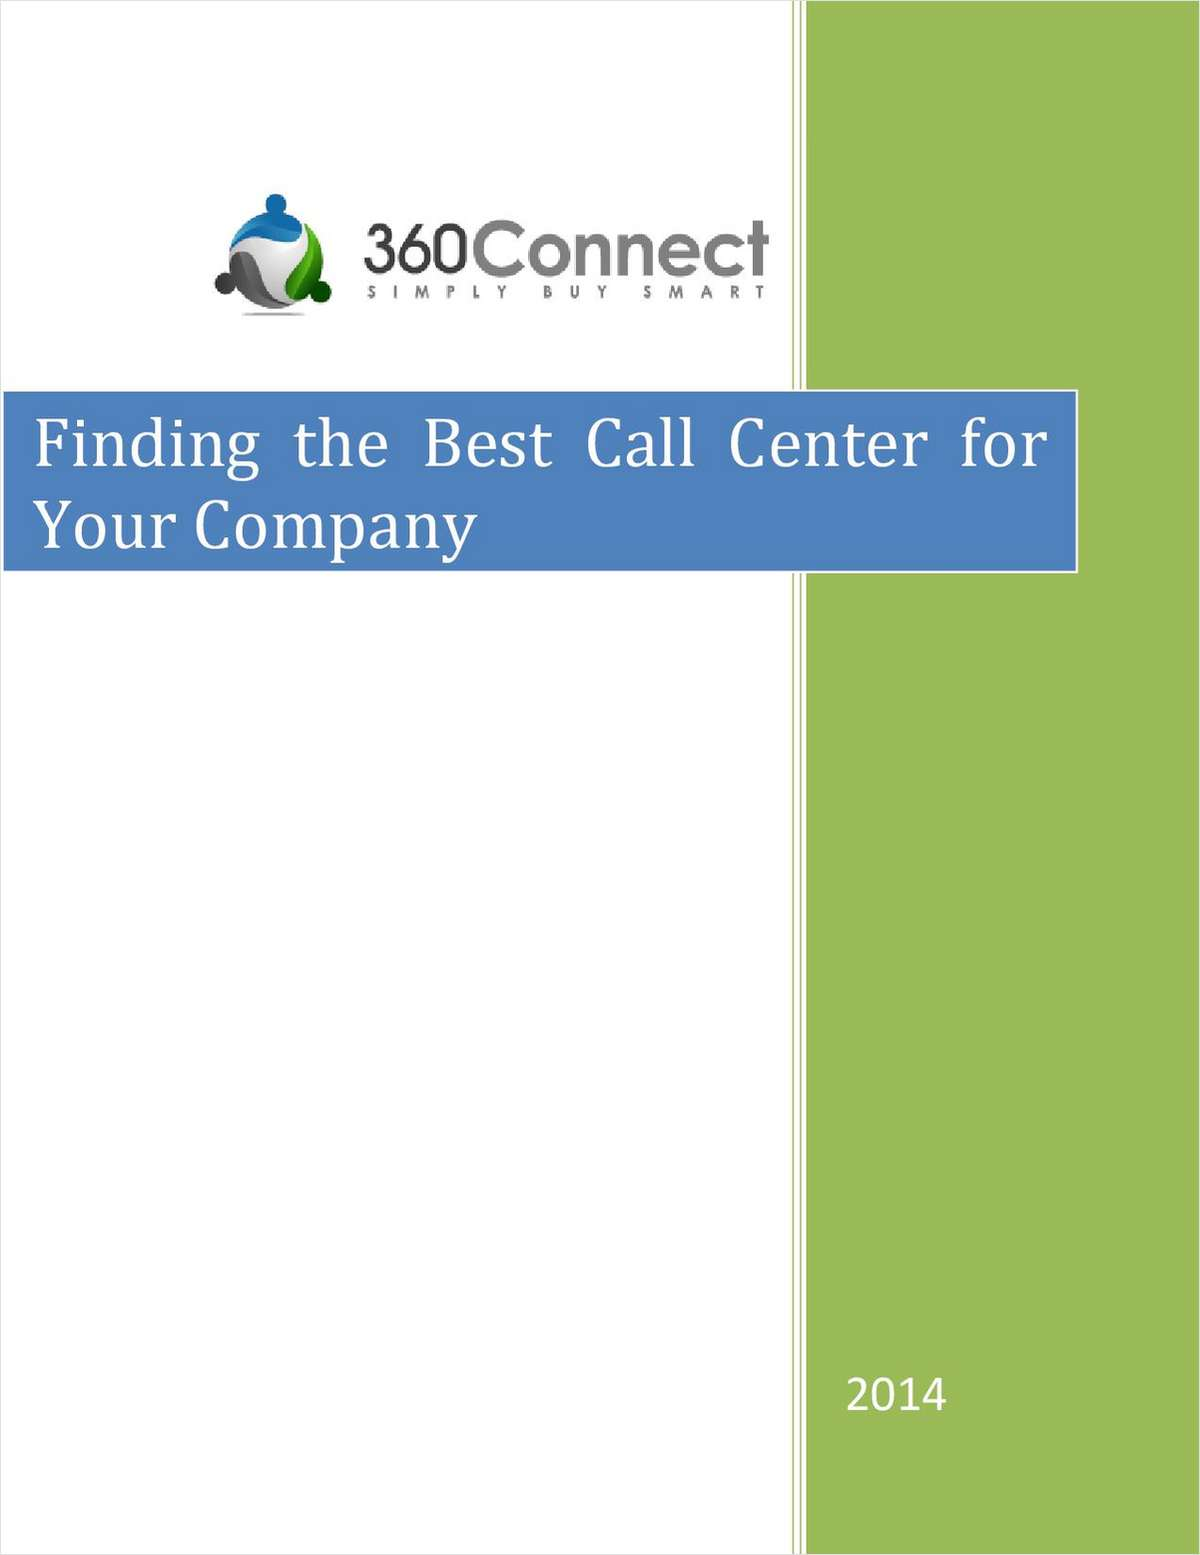 Finding the Best Call Center for Your Company